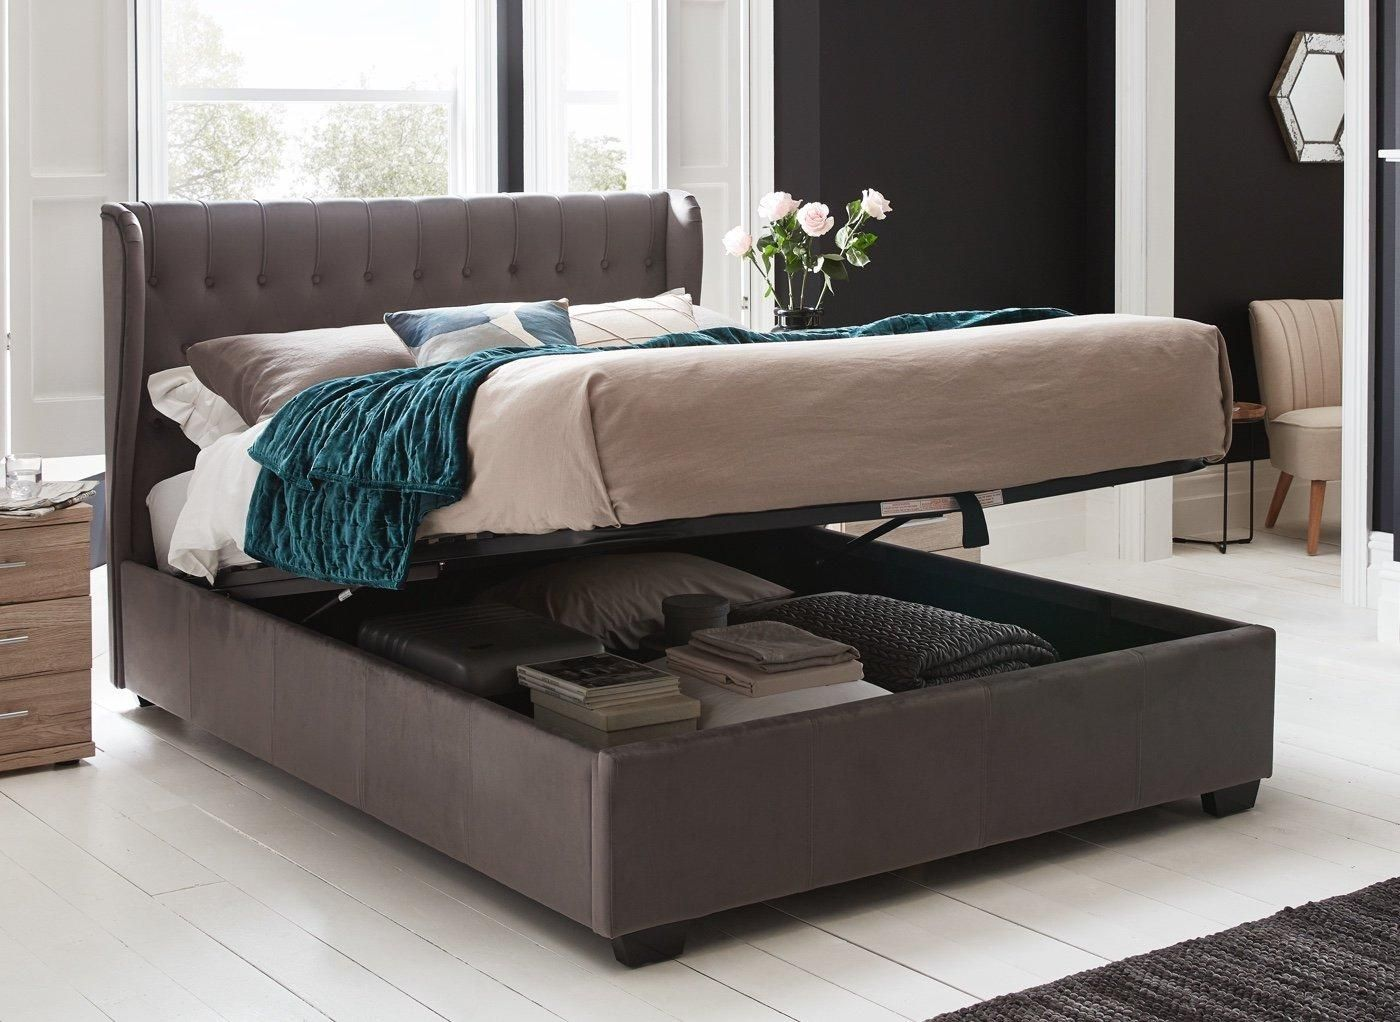 Best Sana Grey Fabric Ottoman Bed Frame 5 King In 2020 400 x 300